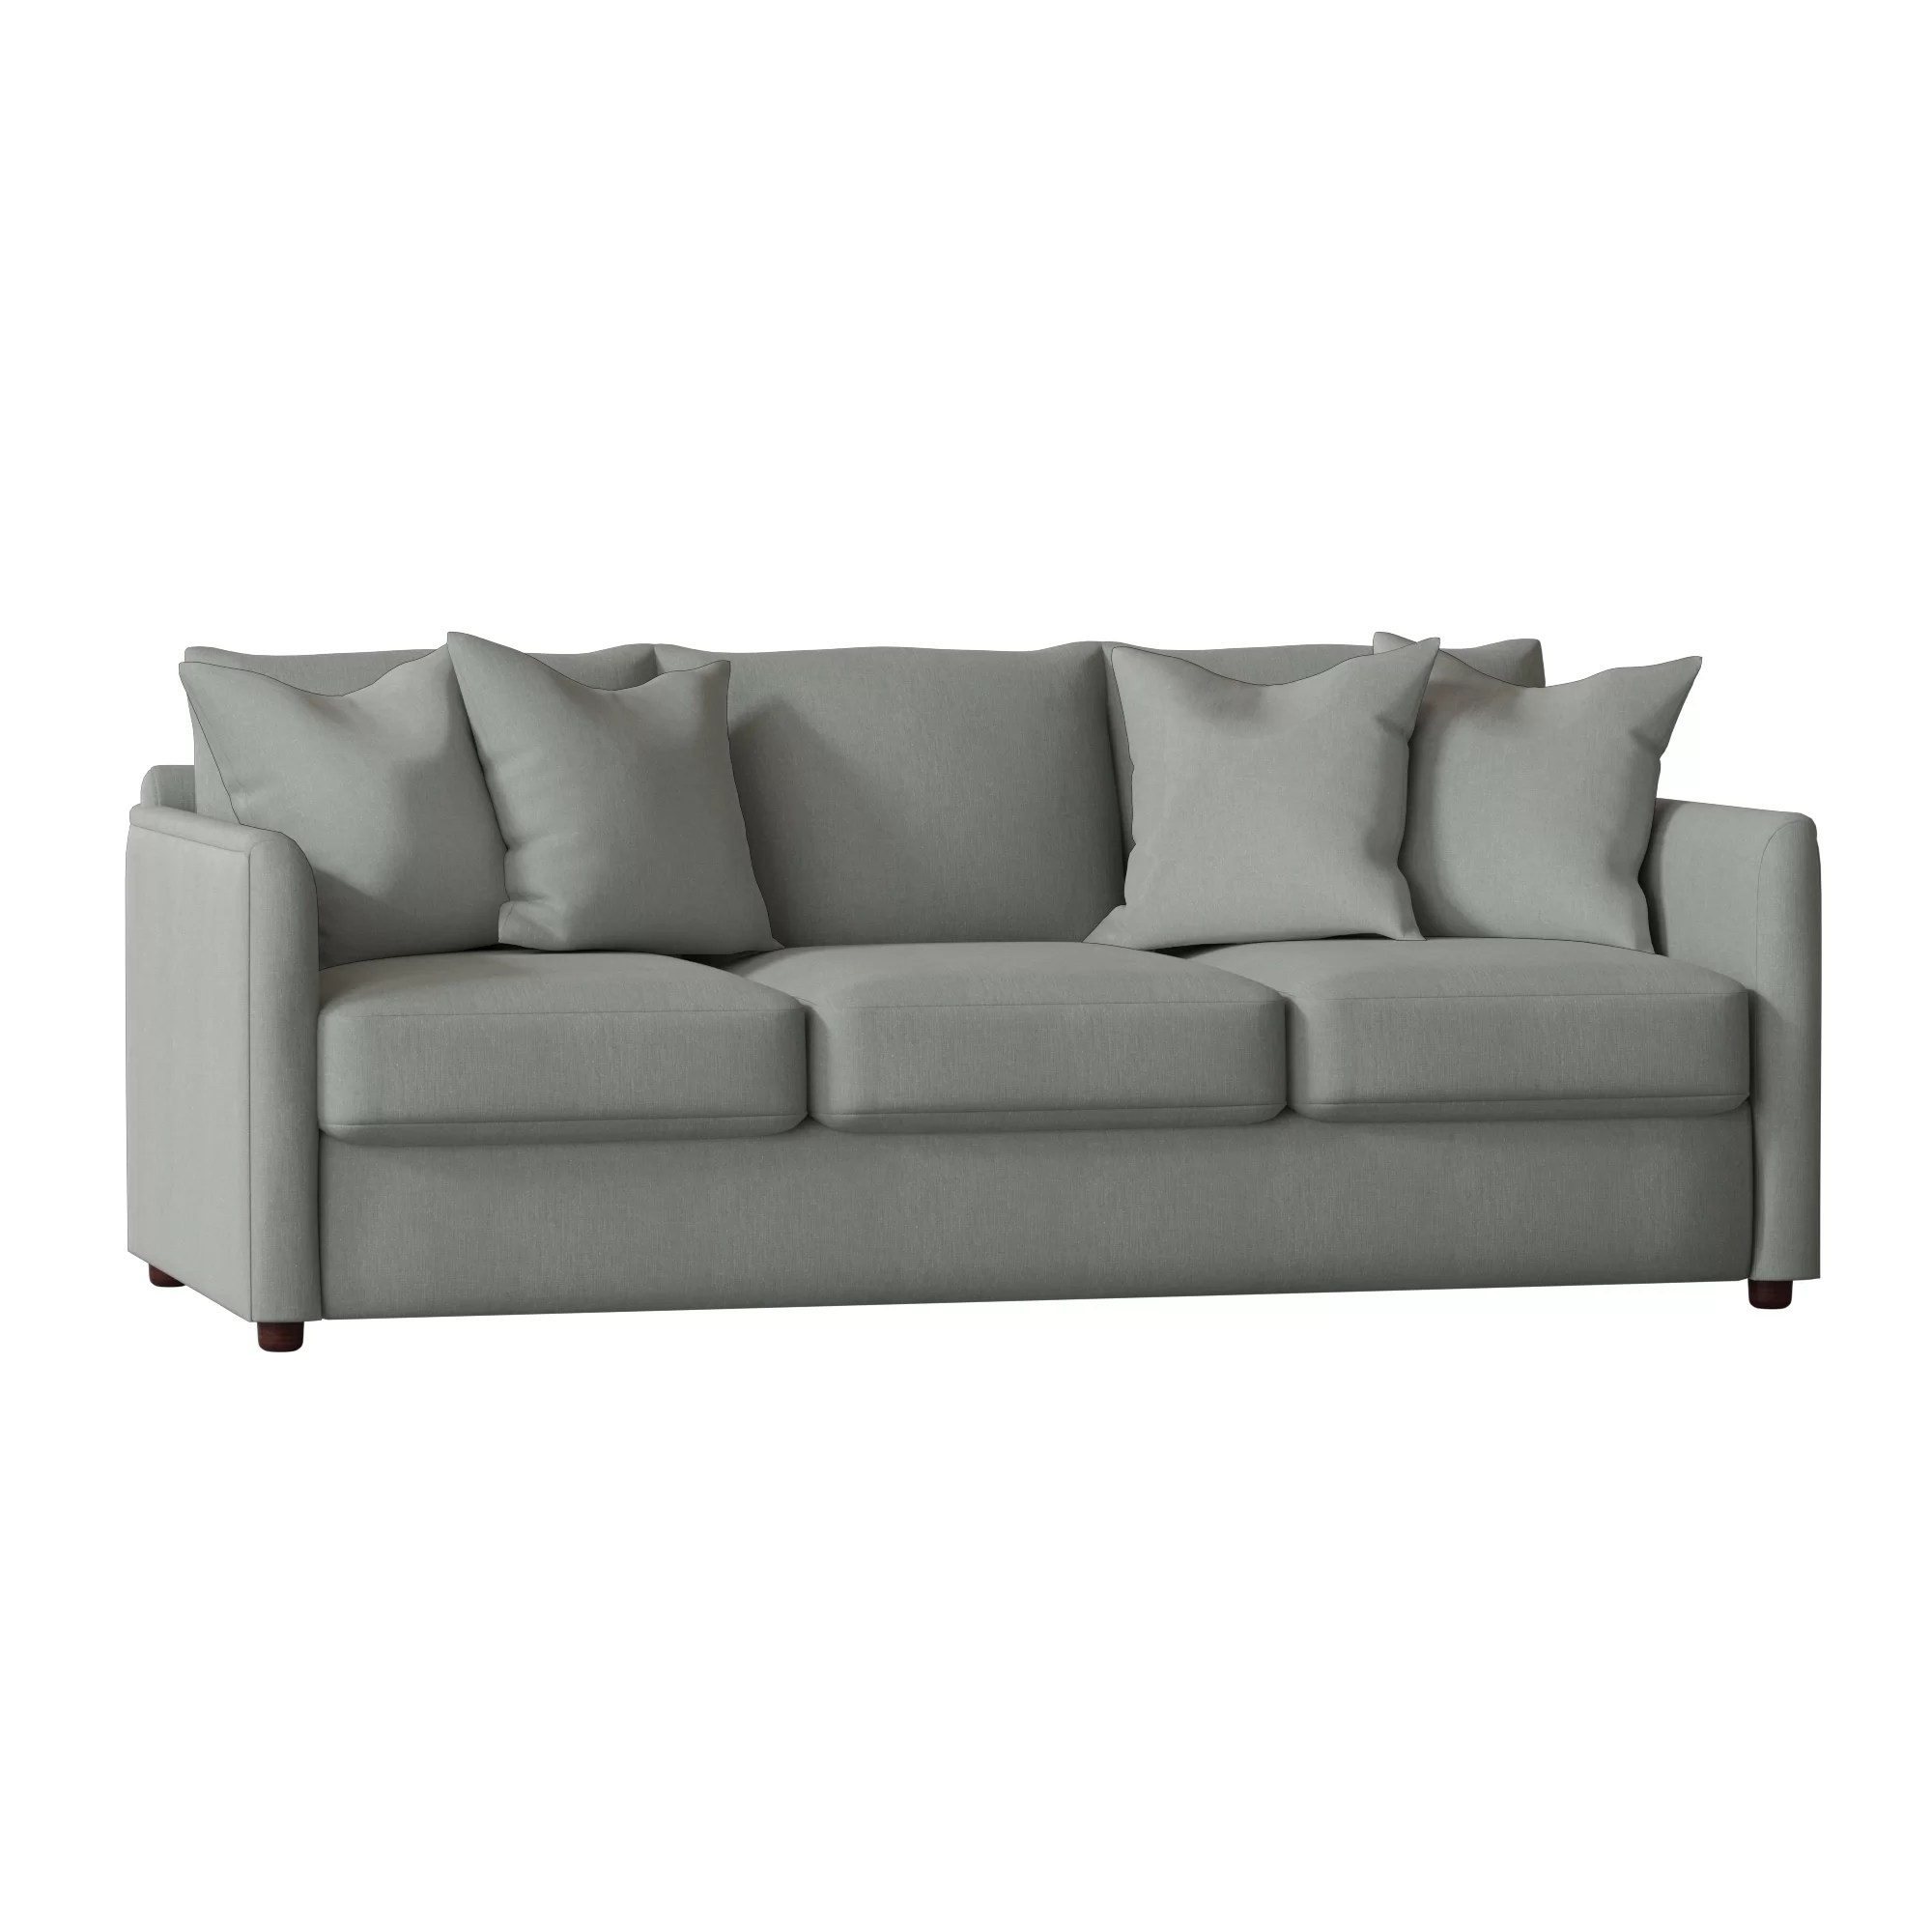 Barlow White Leather Sofa And Loveseat Set Alice Sofa